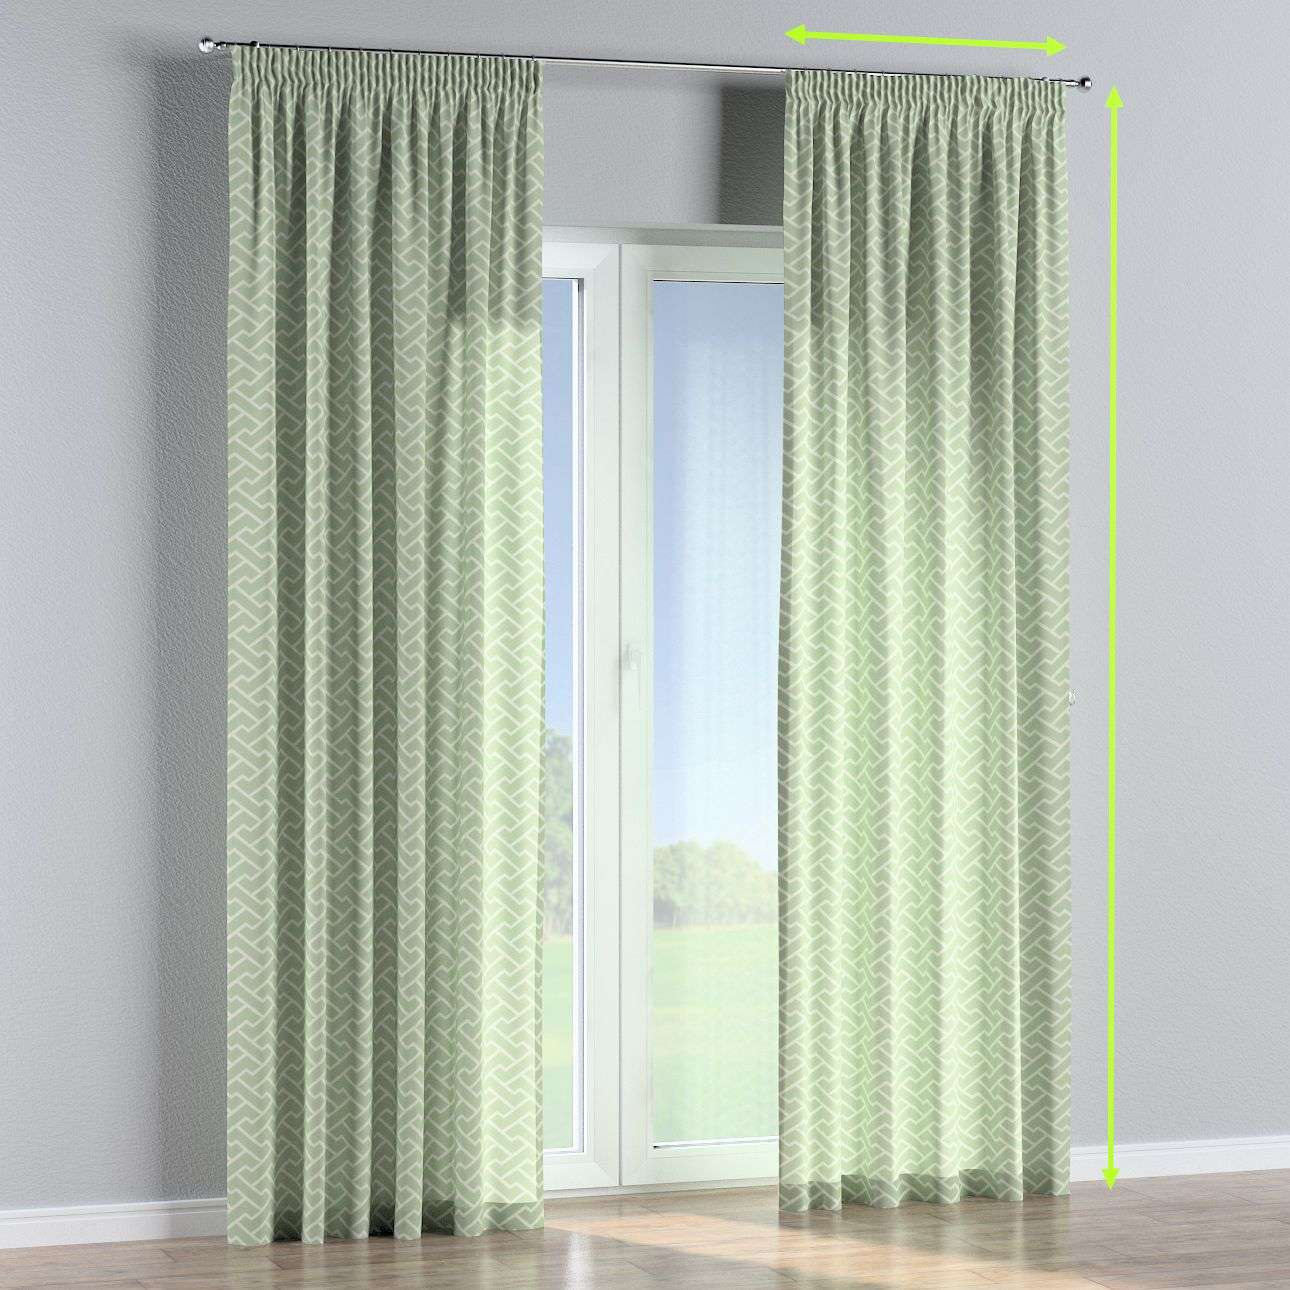 Pencil pleat lined curtains in collection Comics/Geometrical, fabric: 141-63